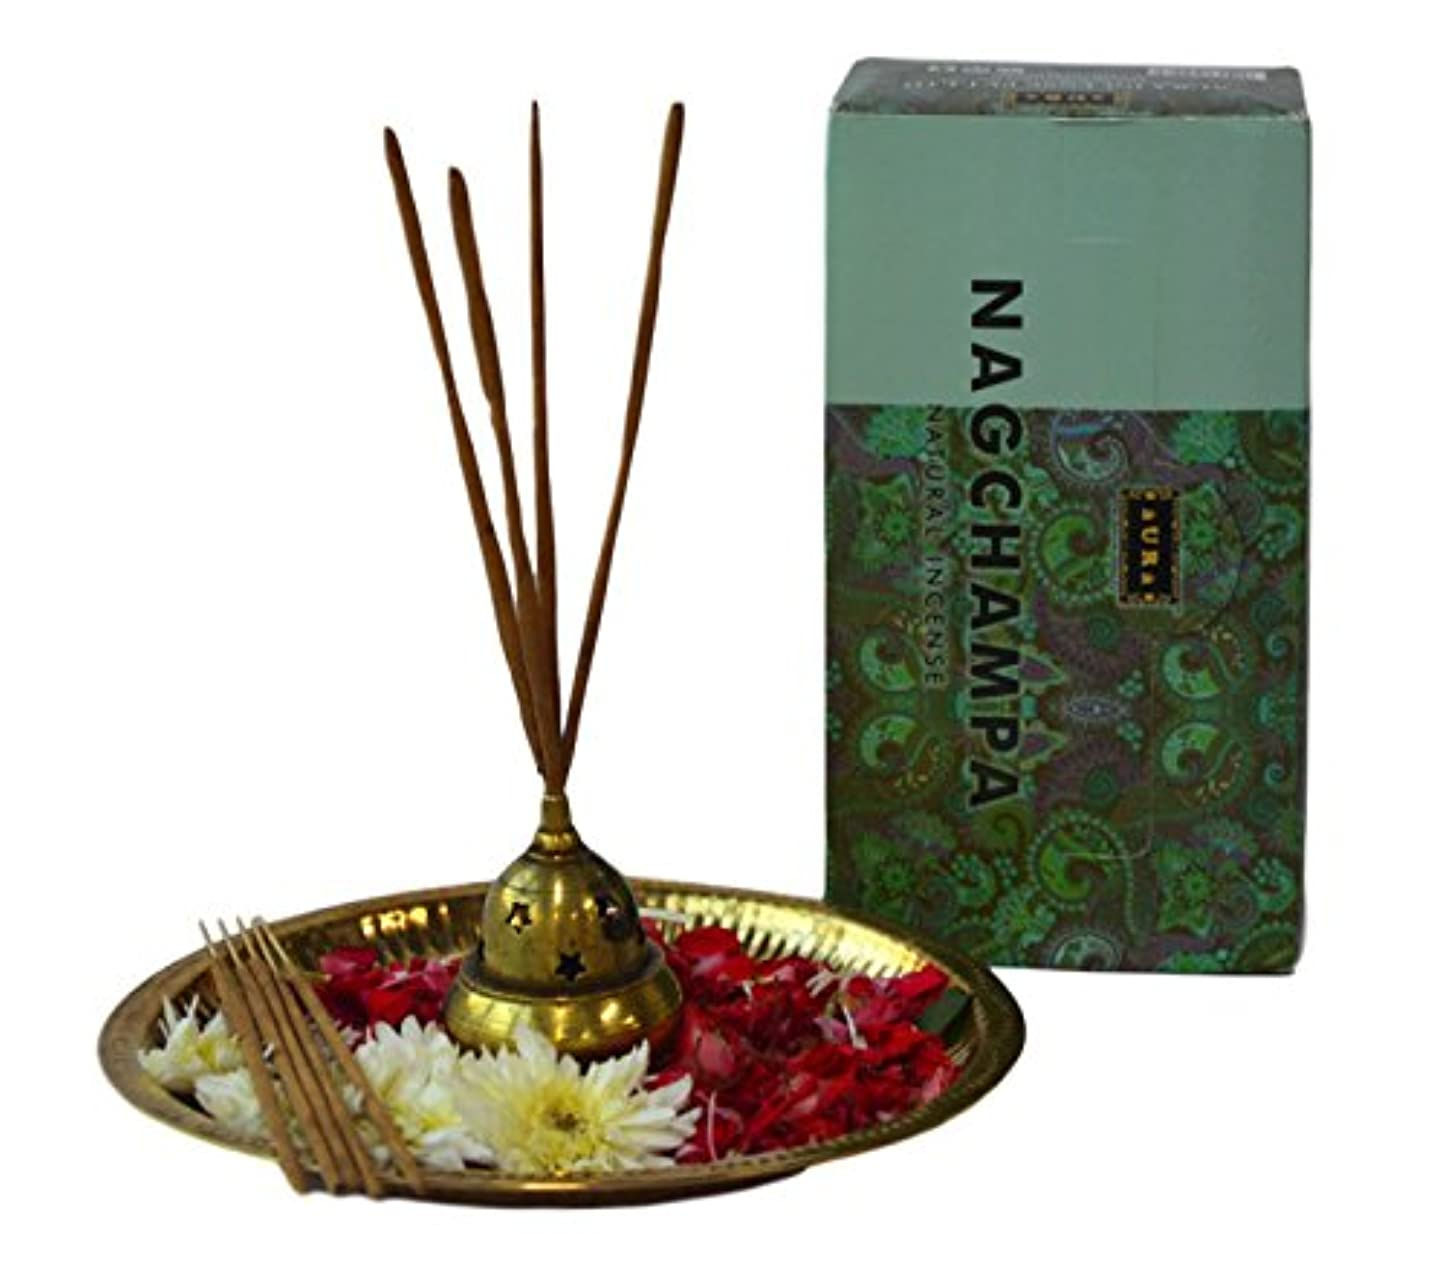 テンション合金命令的Aura Premium Aromatherapy Natural Incense Sticks, Nag Champa Masala Incense Sticks (12 x 15gms),VALUE PACK-120...